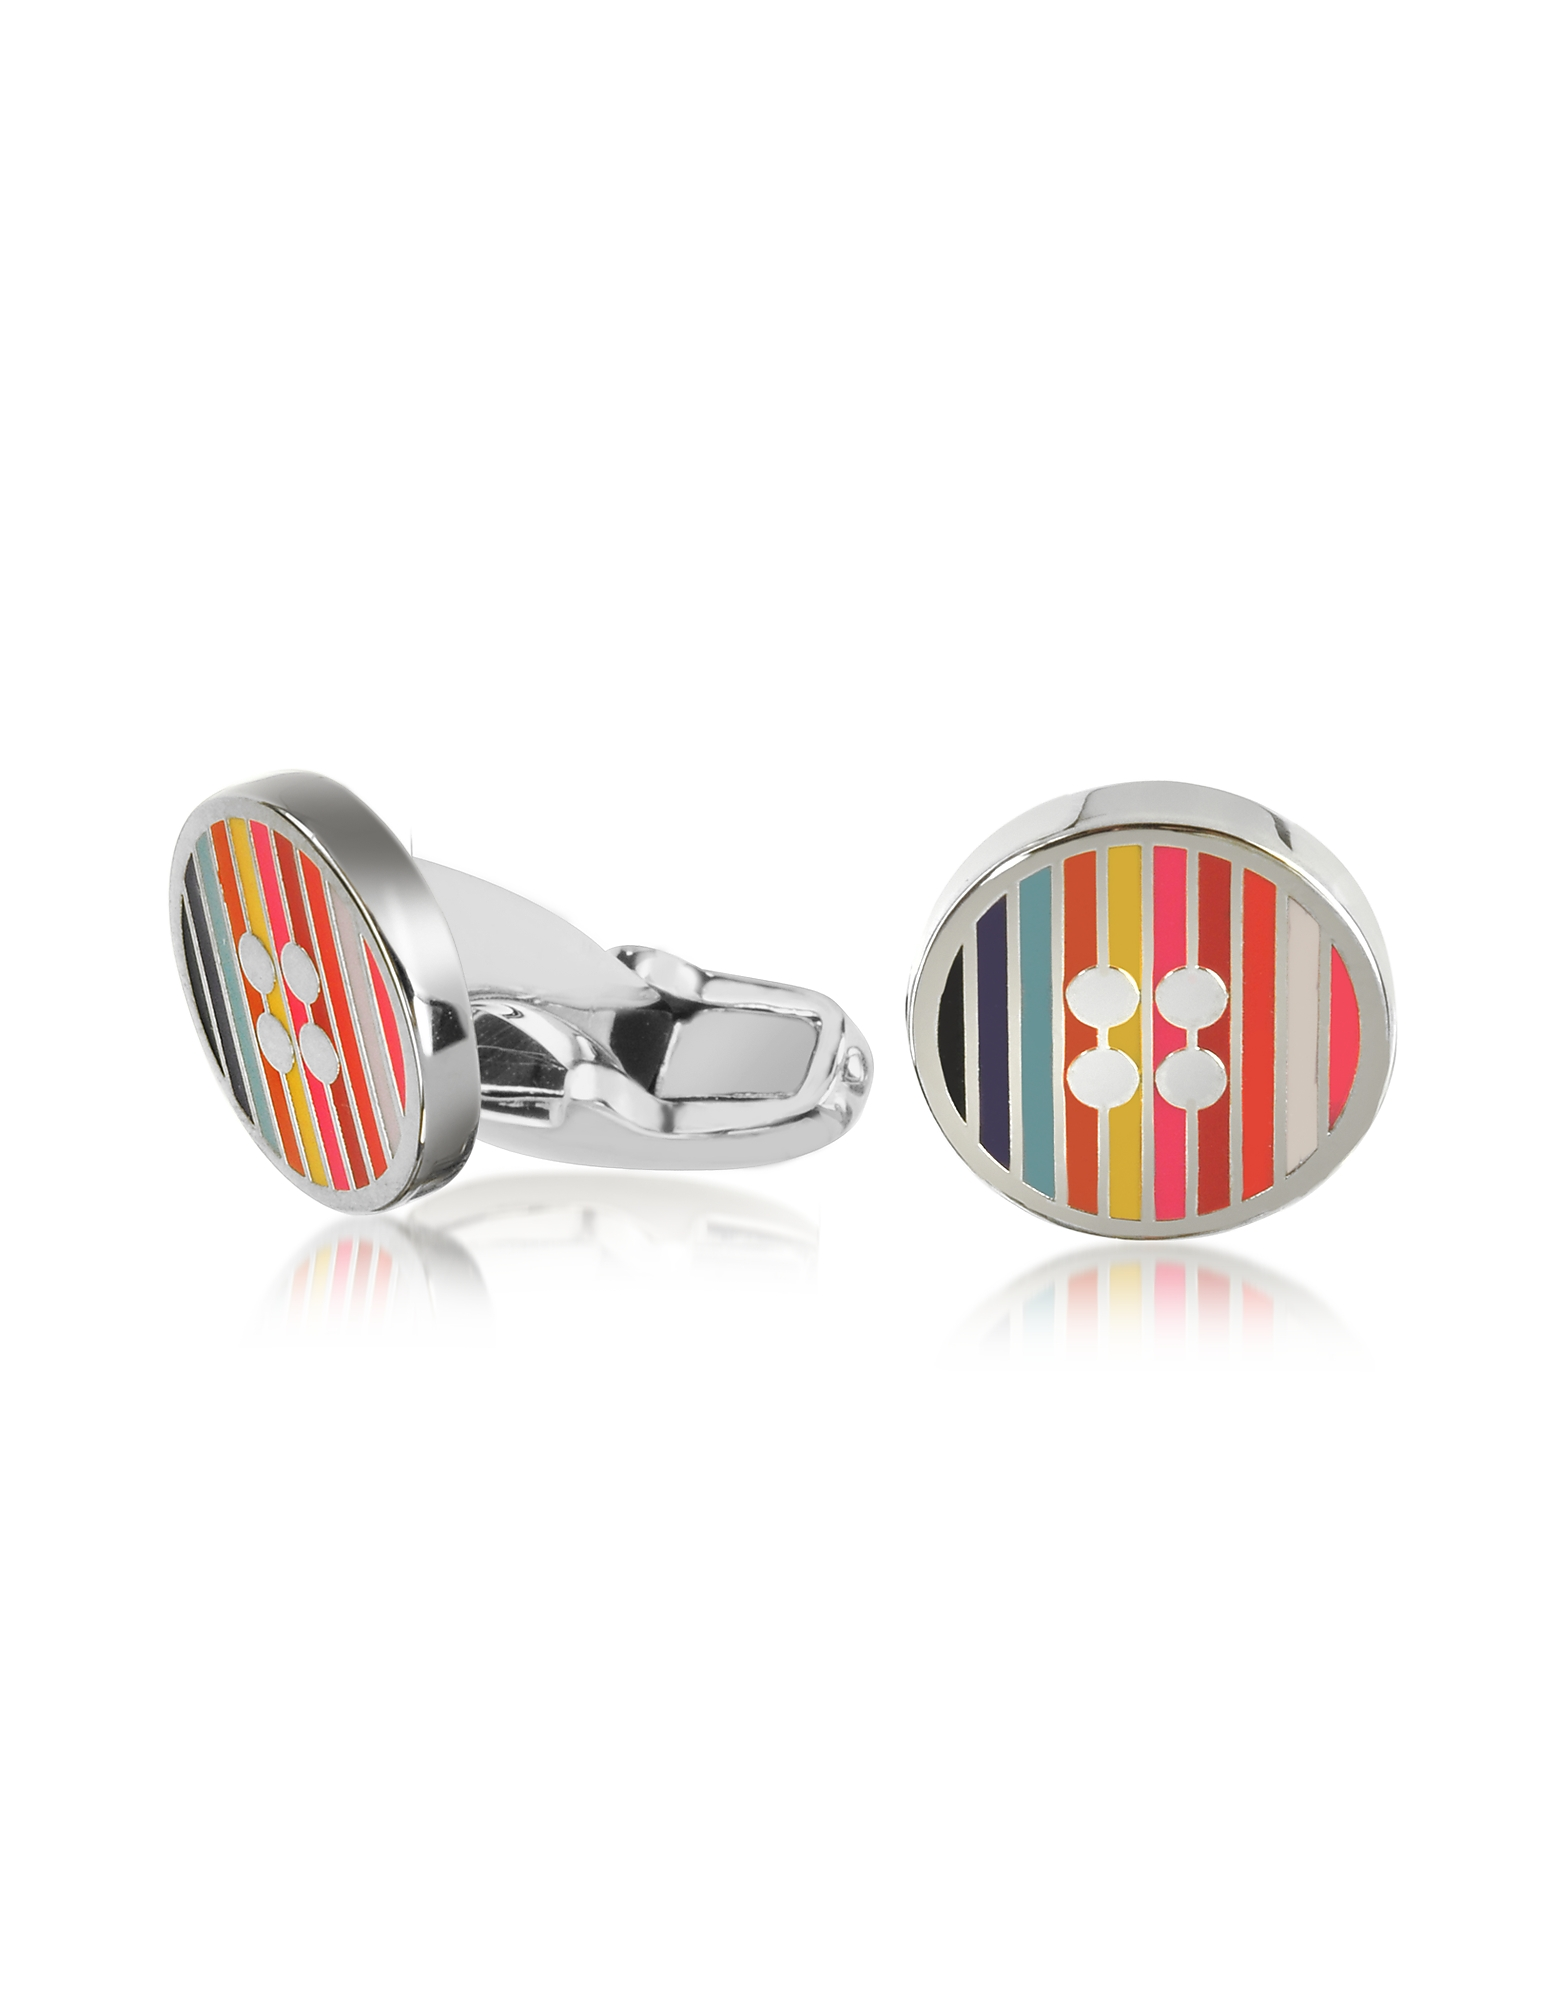 Paul Smith Cufflinks, Men's Signature Stripe Button Cufflinks